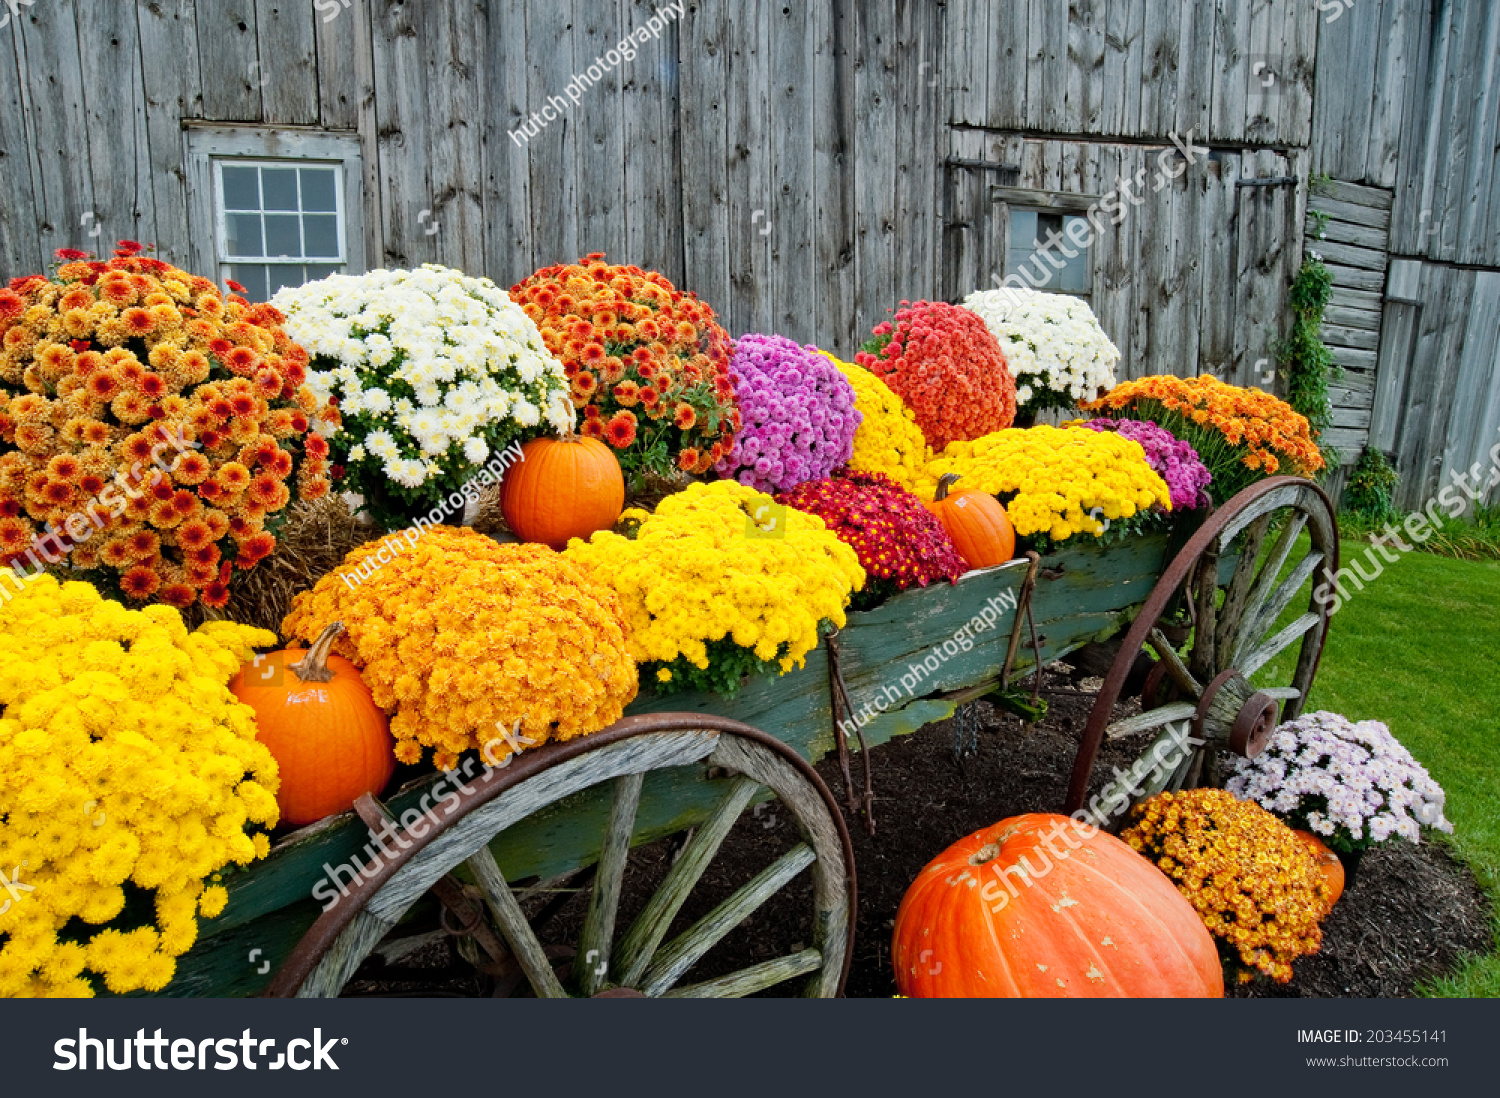 Colorful Flowers In Rustic Wagon With Pumpkins At Fall Roadside Stand Barn Background